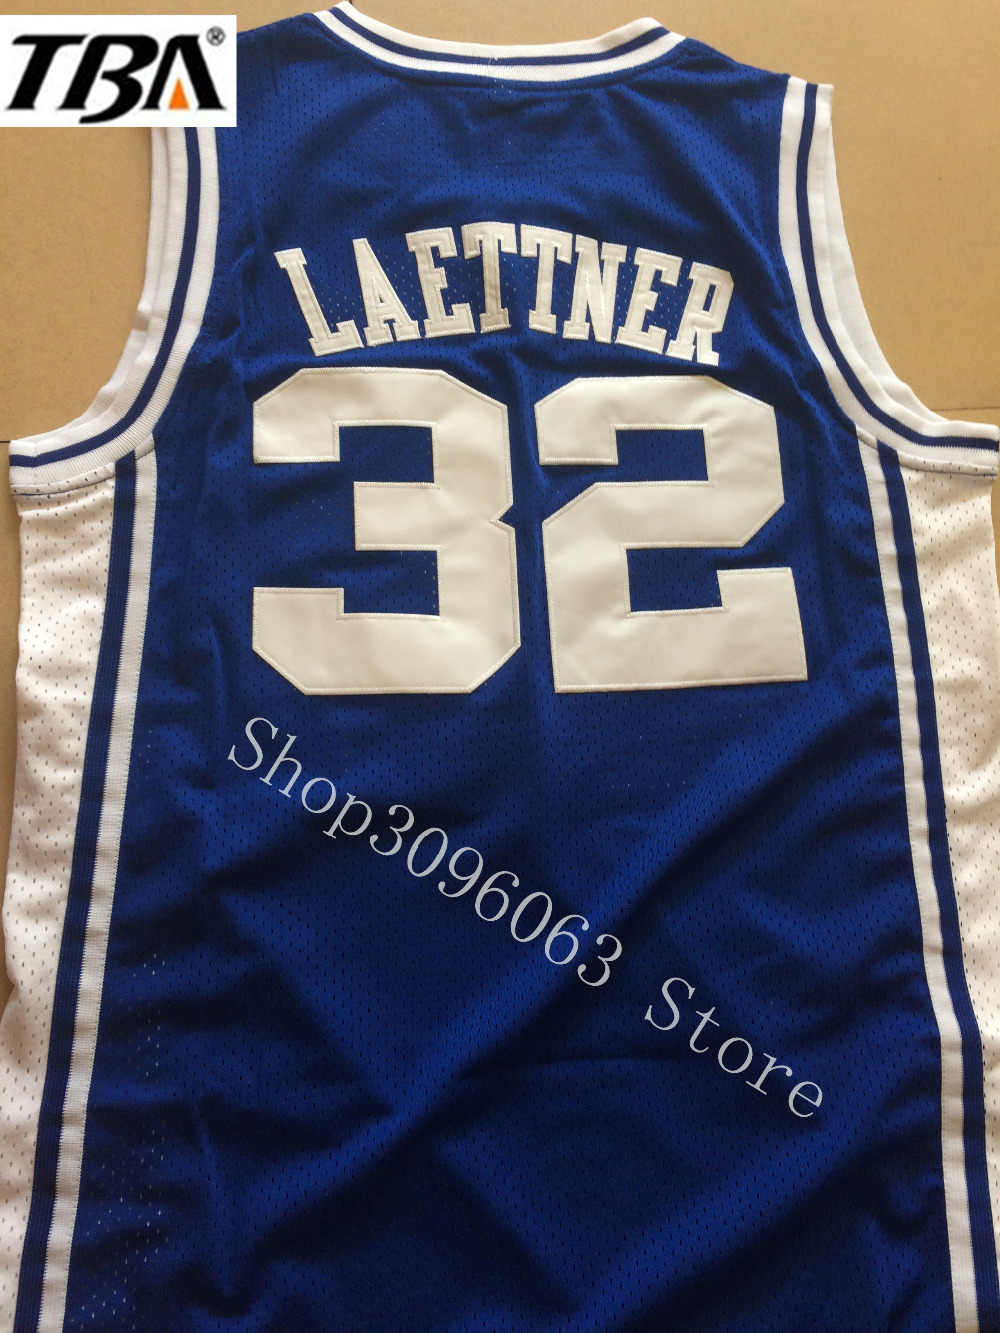 buy popular ef001 63fde US $17.68 |NEW Christian Laettner 32 DUKE Basketball Jersey Blue Cheap  Throwback Basketball Stitched Jerseys Free Shipping-in Basketball Jerseys  from ...